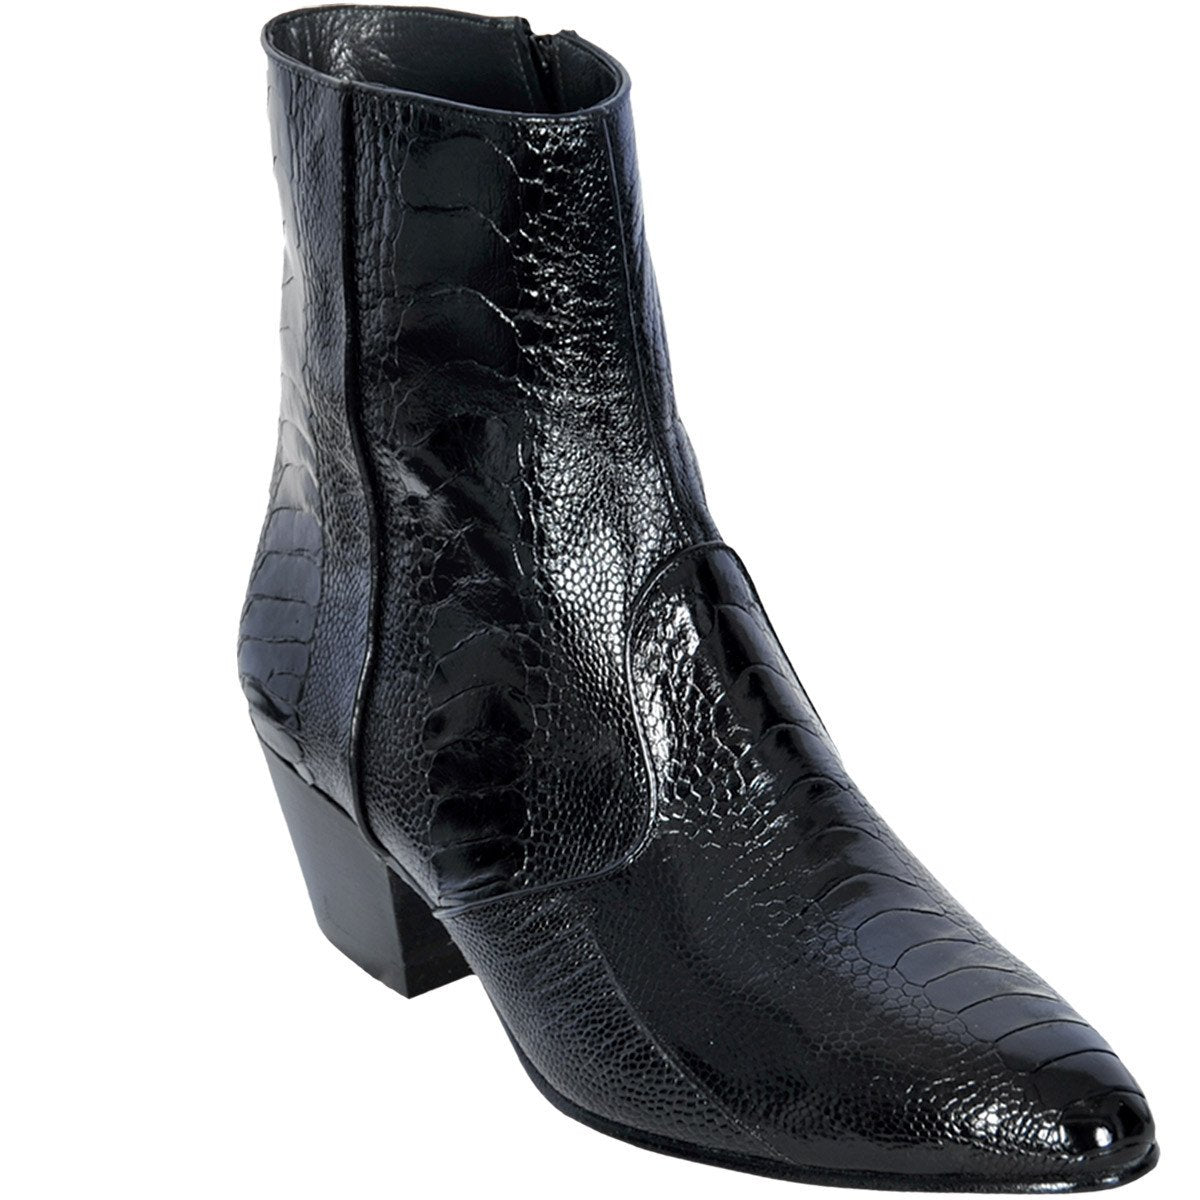 Ostrich Leg Skin Ankle Boot LAB-6305